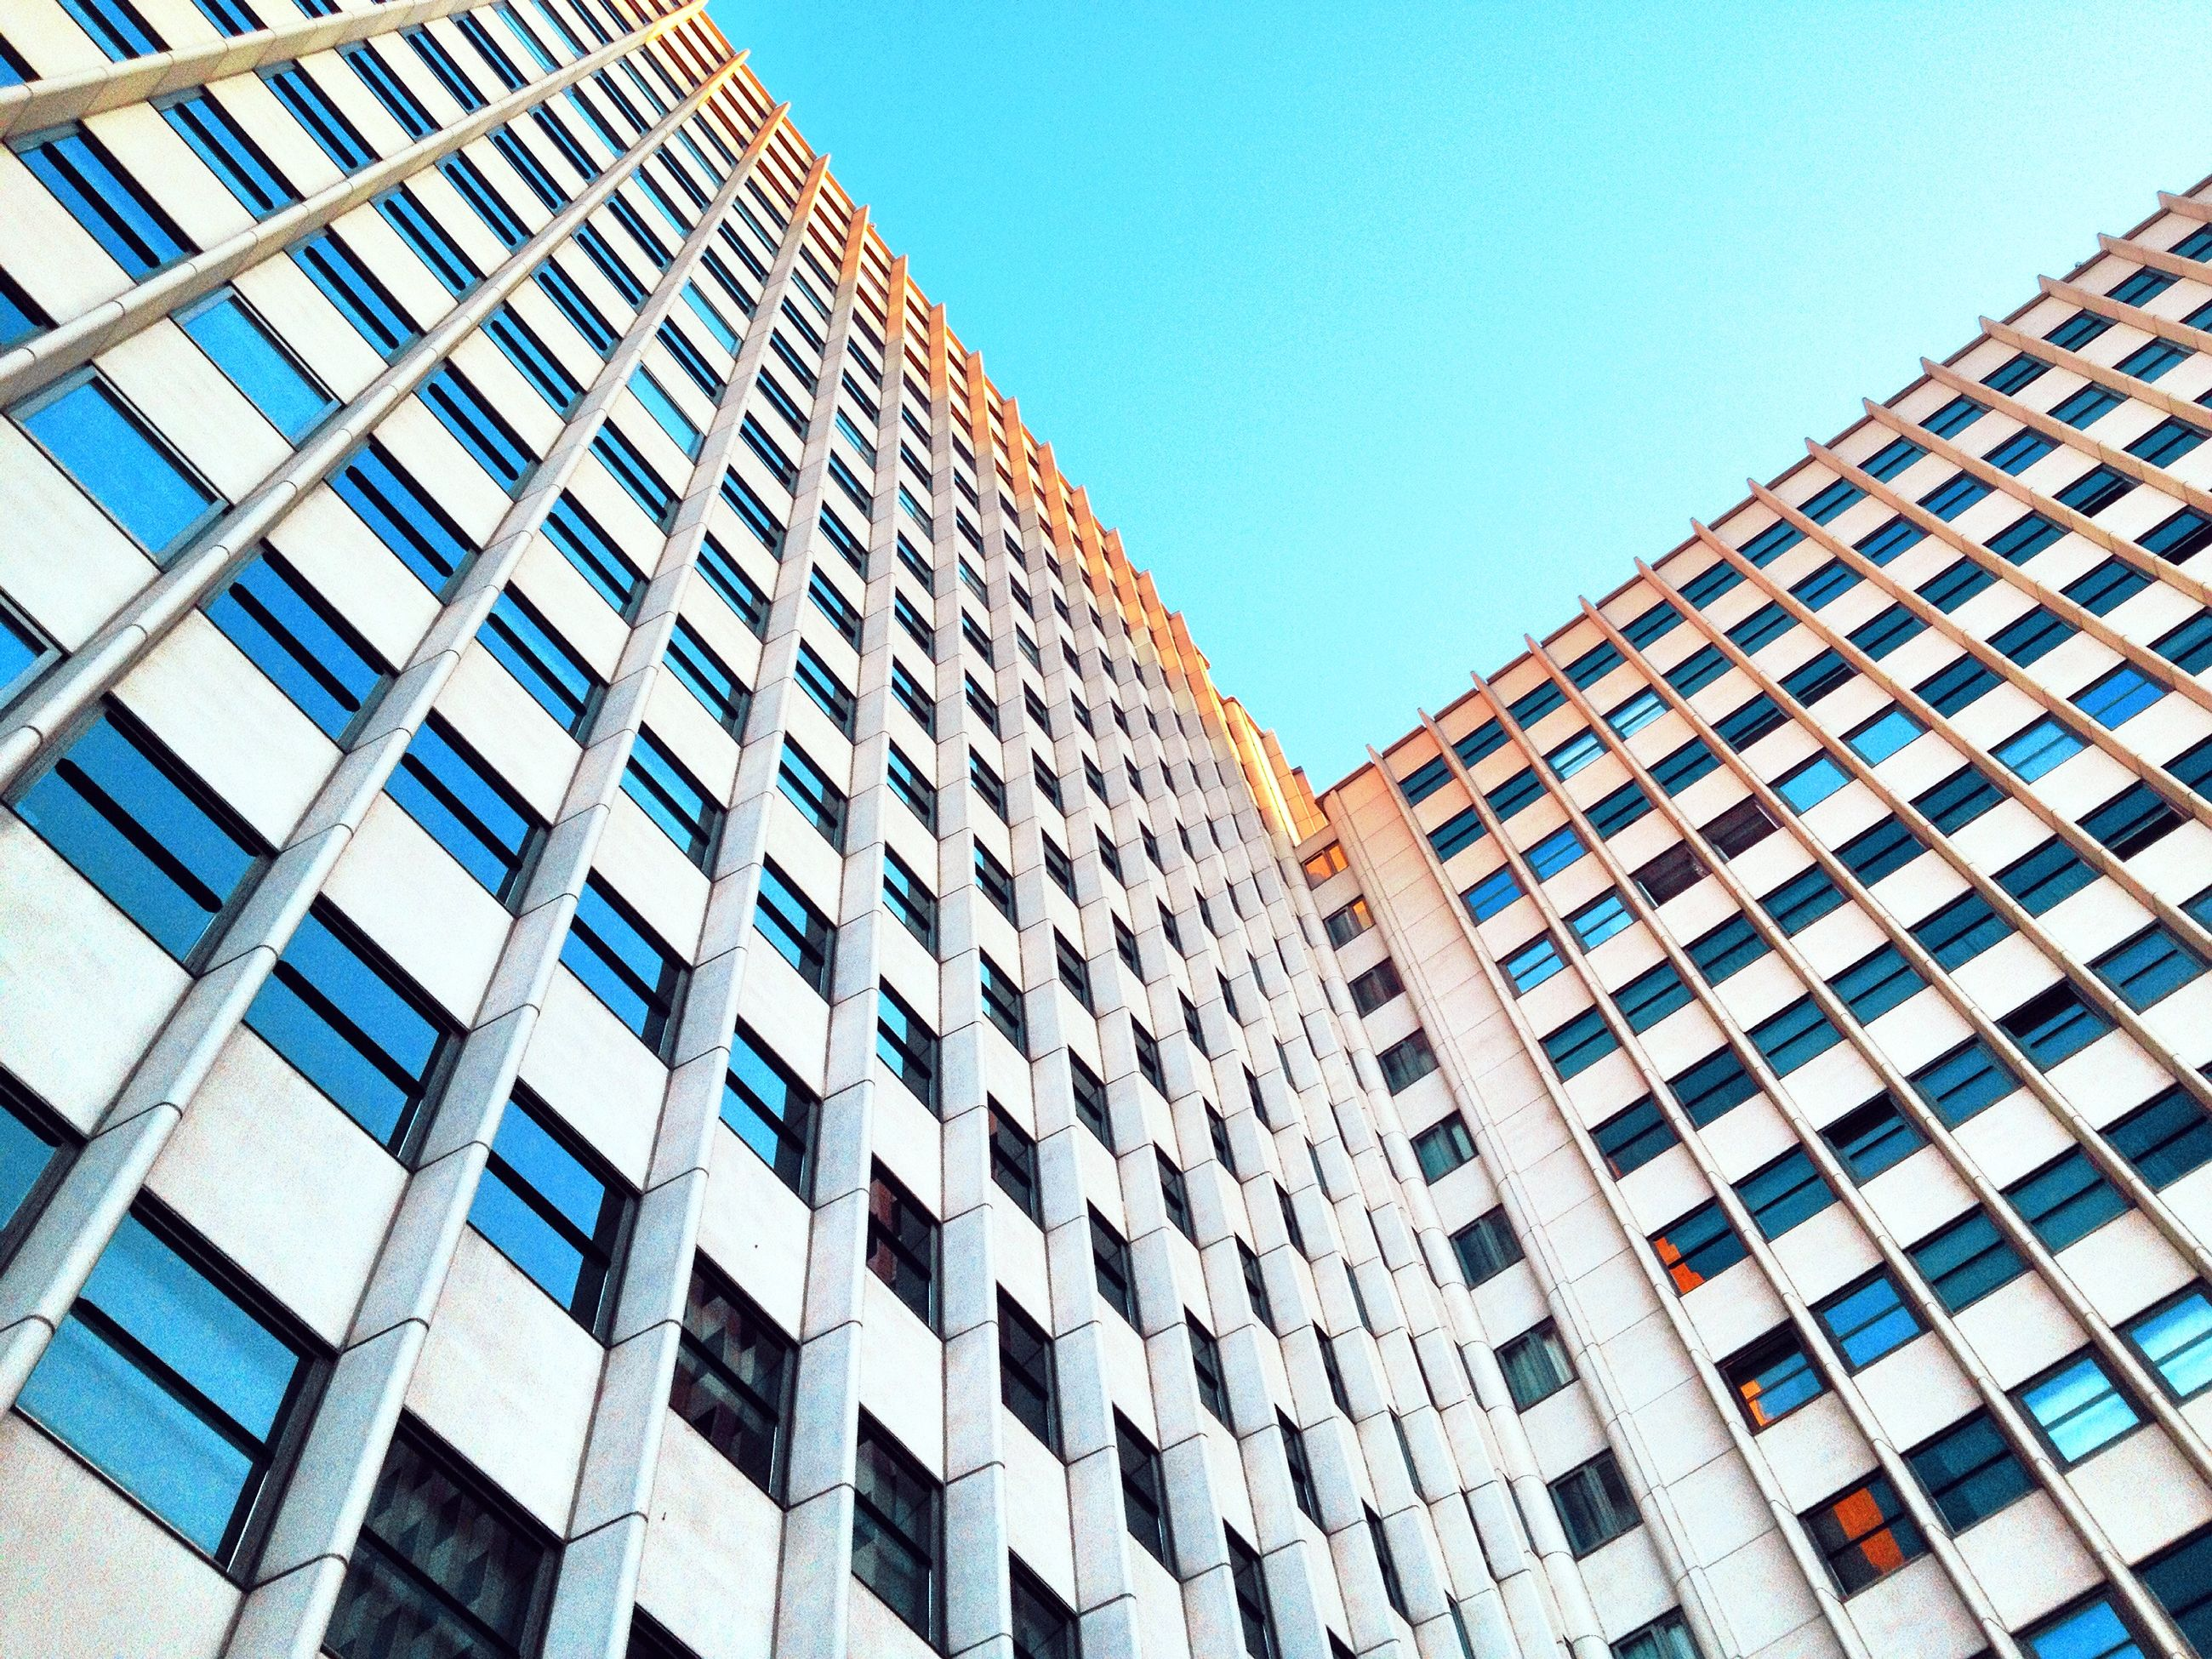 building exterior, architecture, built structure, low angle view, modern, city, office building, window, building, clear sky, skyscraper, tall - high, glass - material, tower, reflection, day, sky, repetition, no people, outdoors